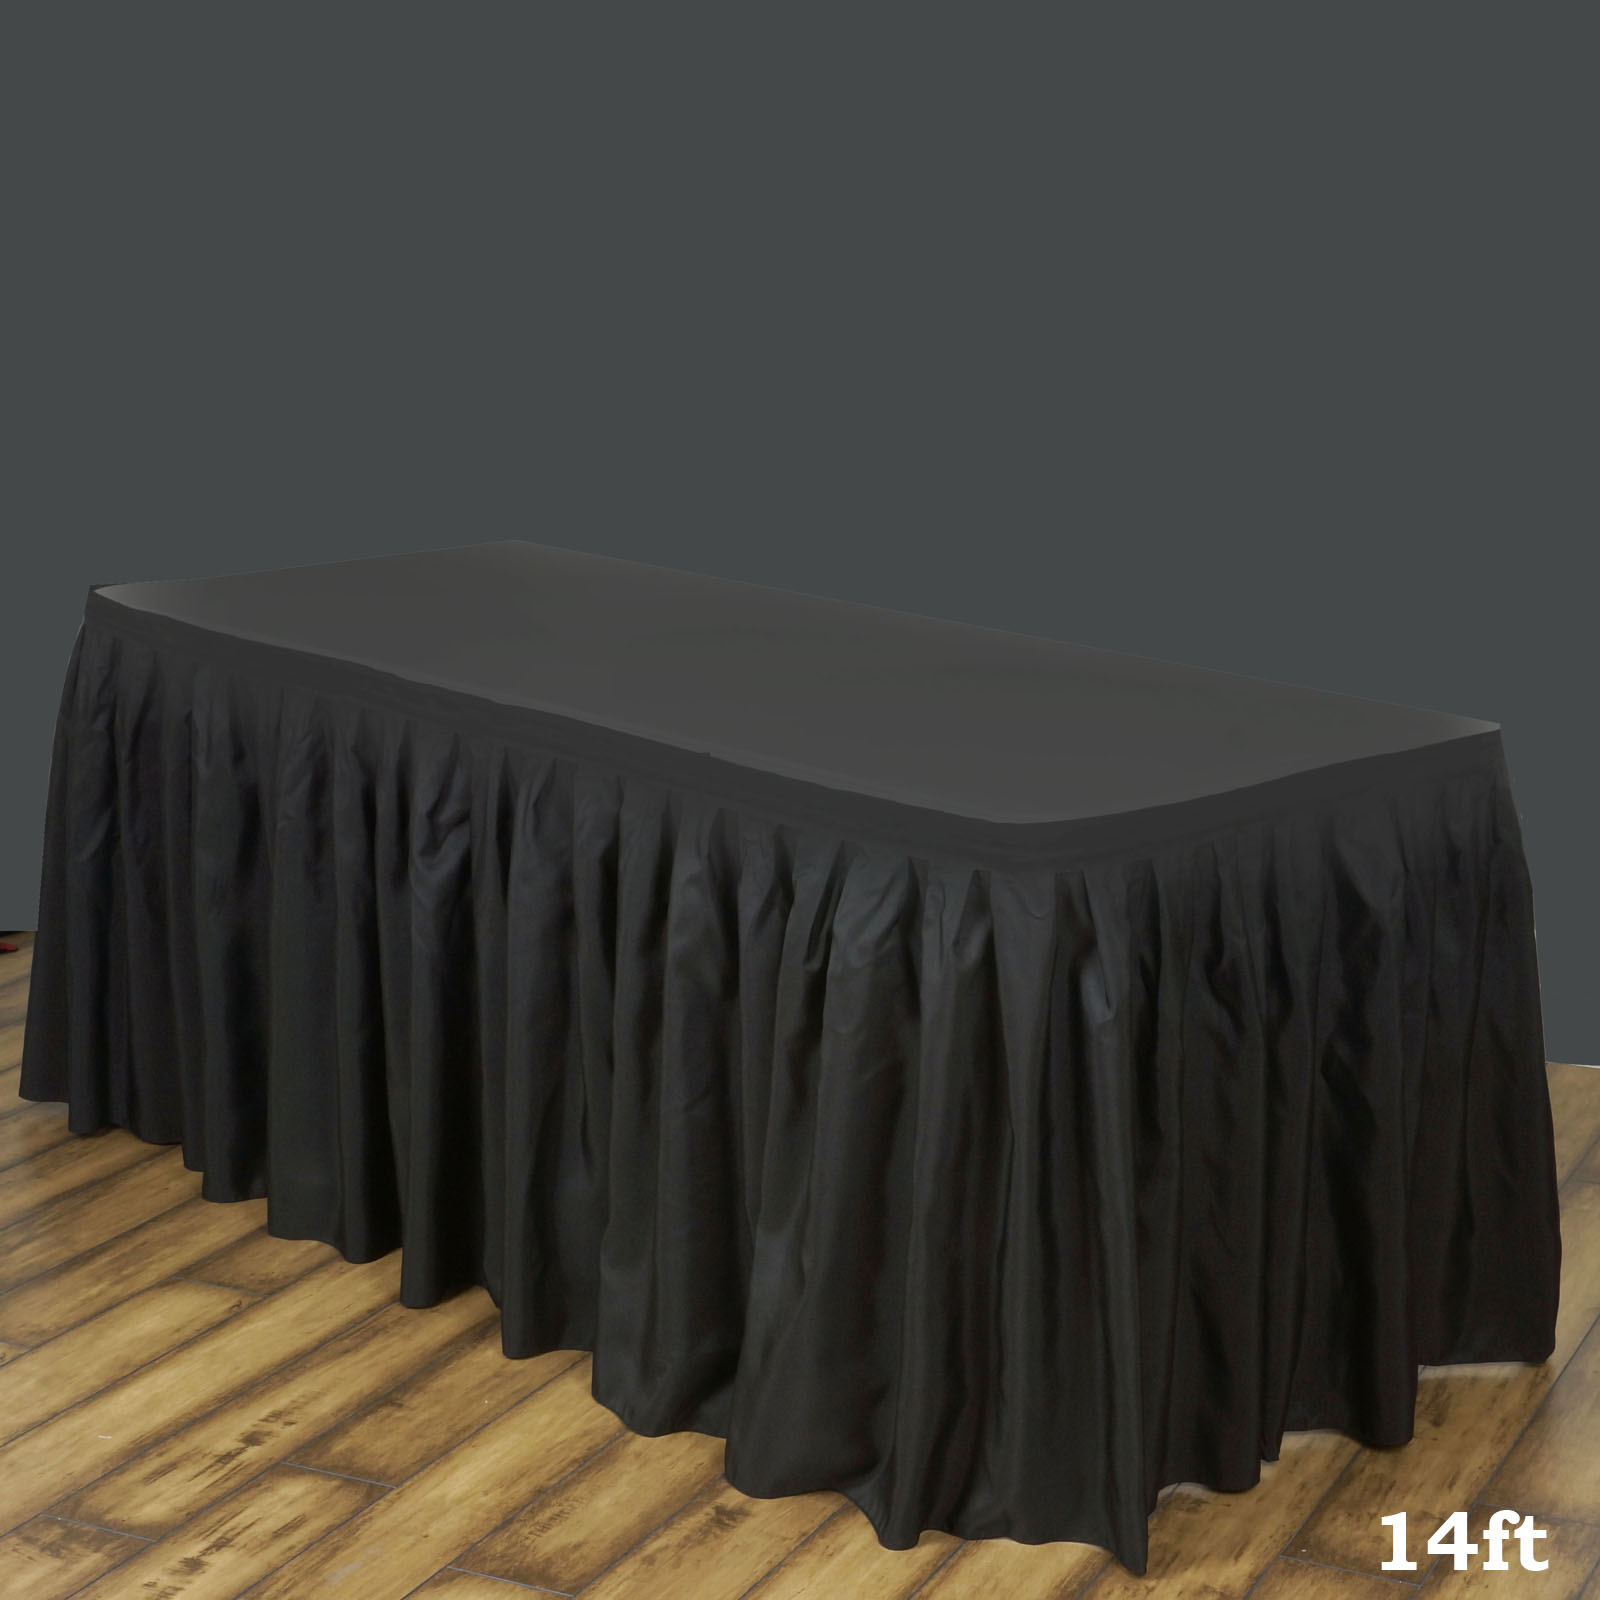 ef1a76659404 Efavormart 21ft Burgundy Accordion Pleat Polyester Table Skirt for Kitchen  Dining Catering Wedding Birthday Party Decoration ...